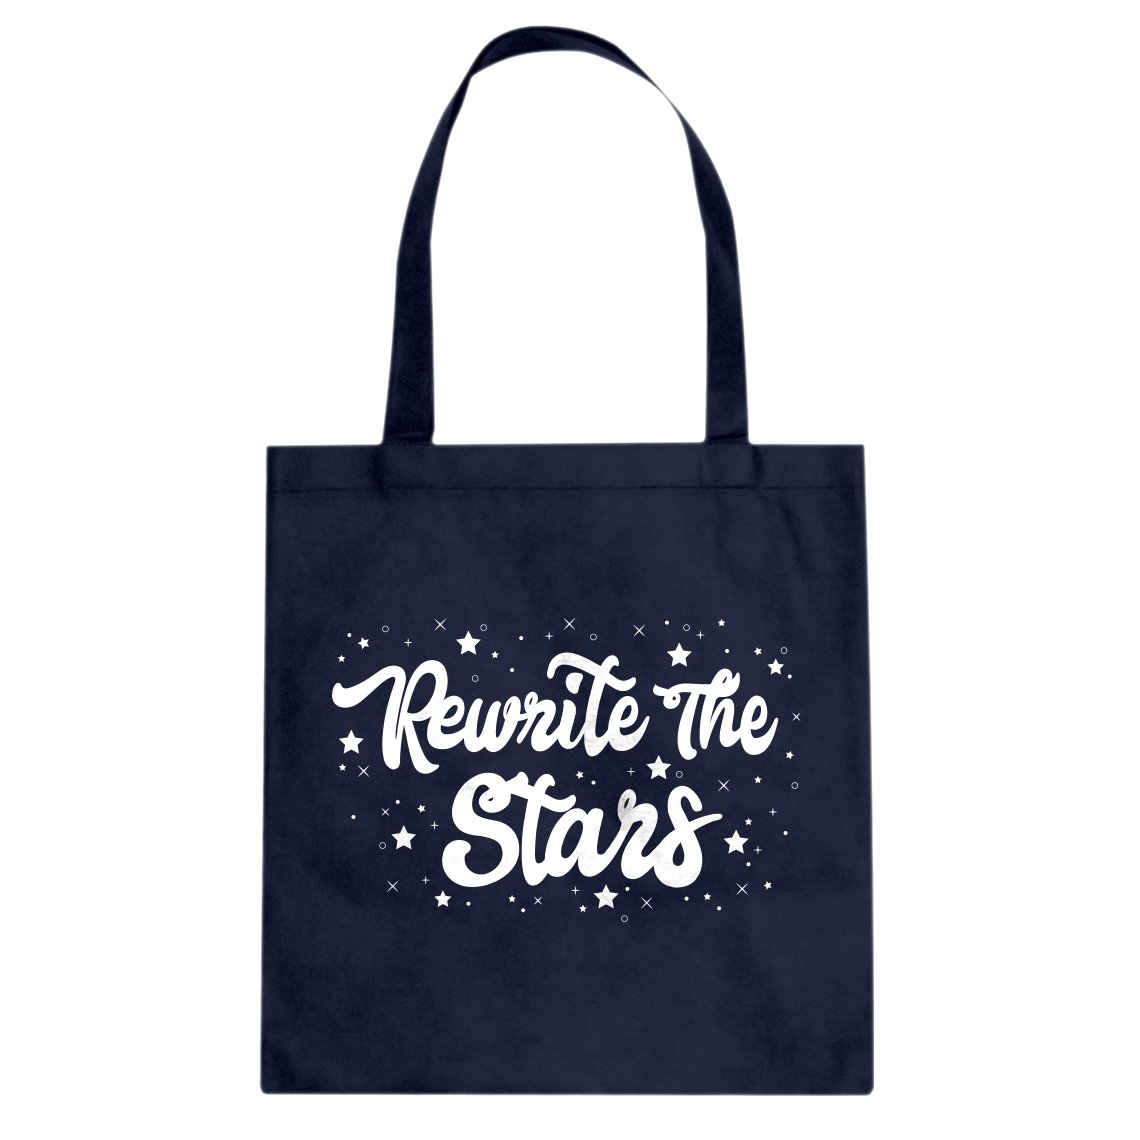 Tote Rewrite the Stars Large Navy Blue Canvas Bag Indica Plateau 3203-B-NB-L